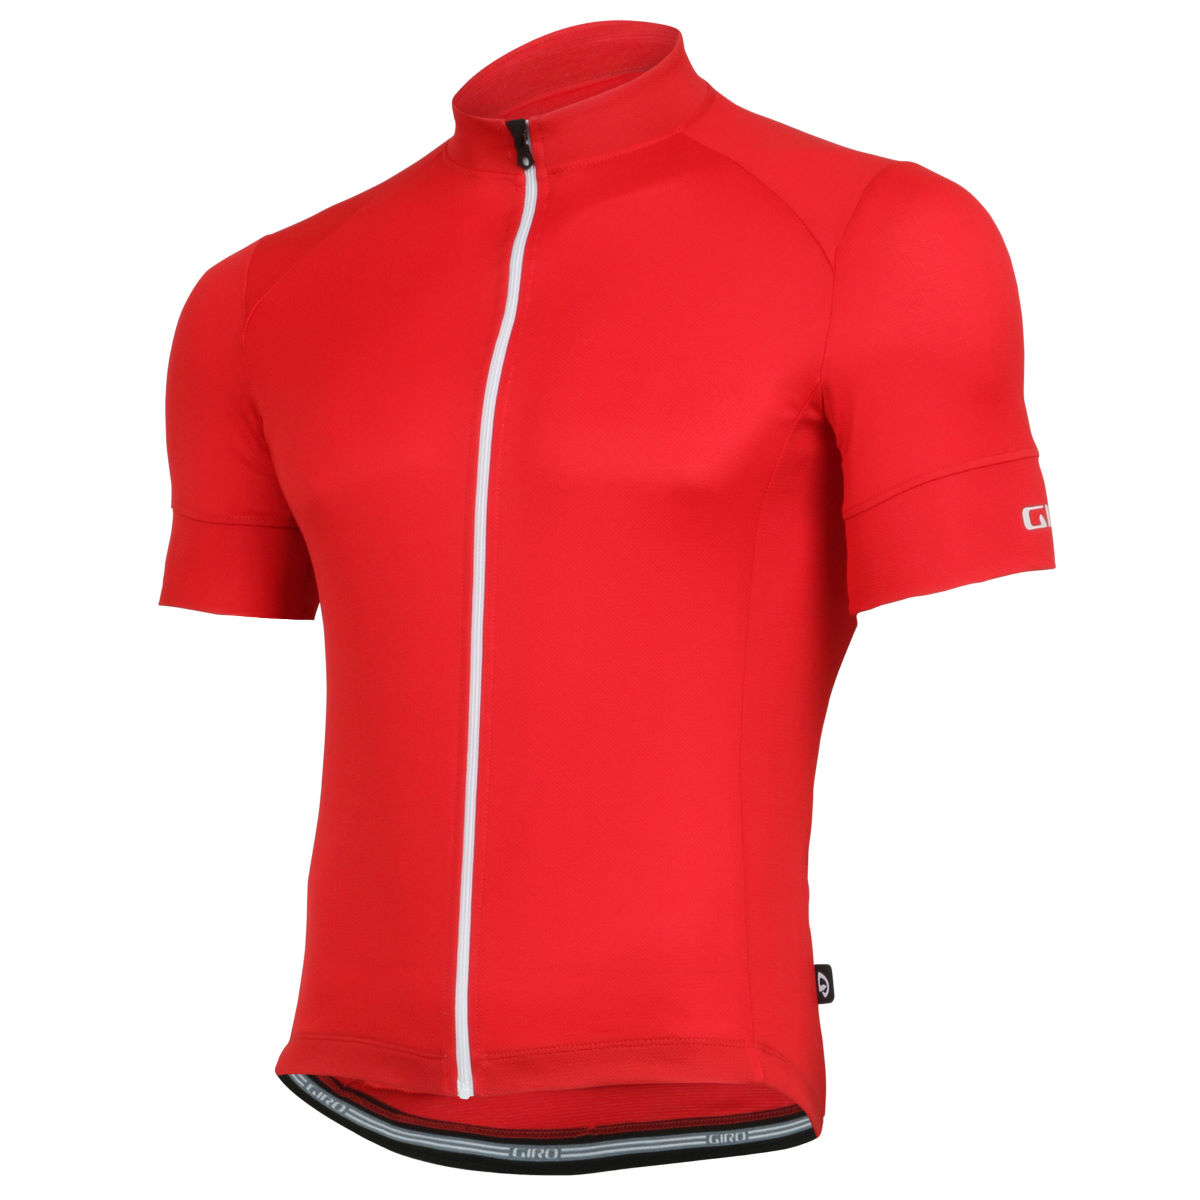 Maillot Giro Chrono Sport - XL Rouge Maillots vélo à manches courtes